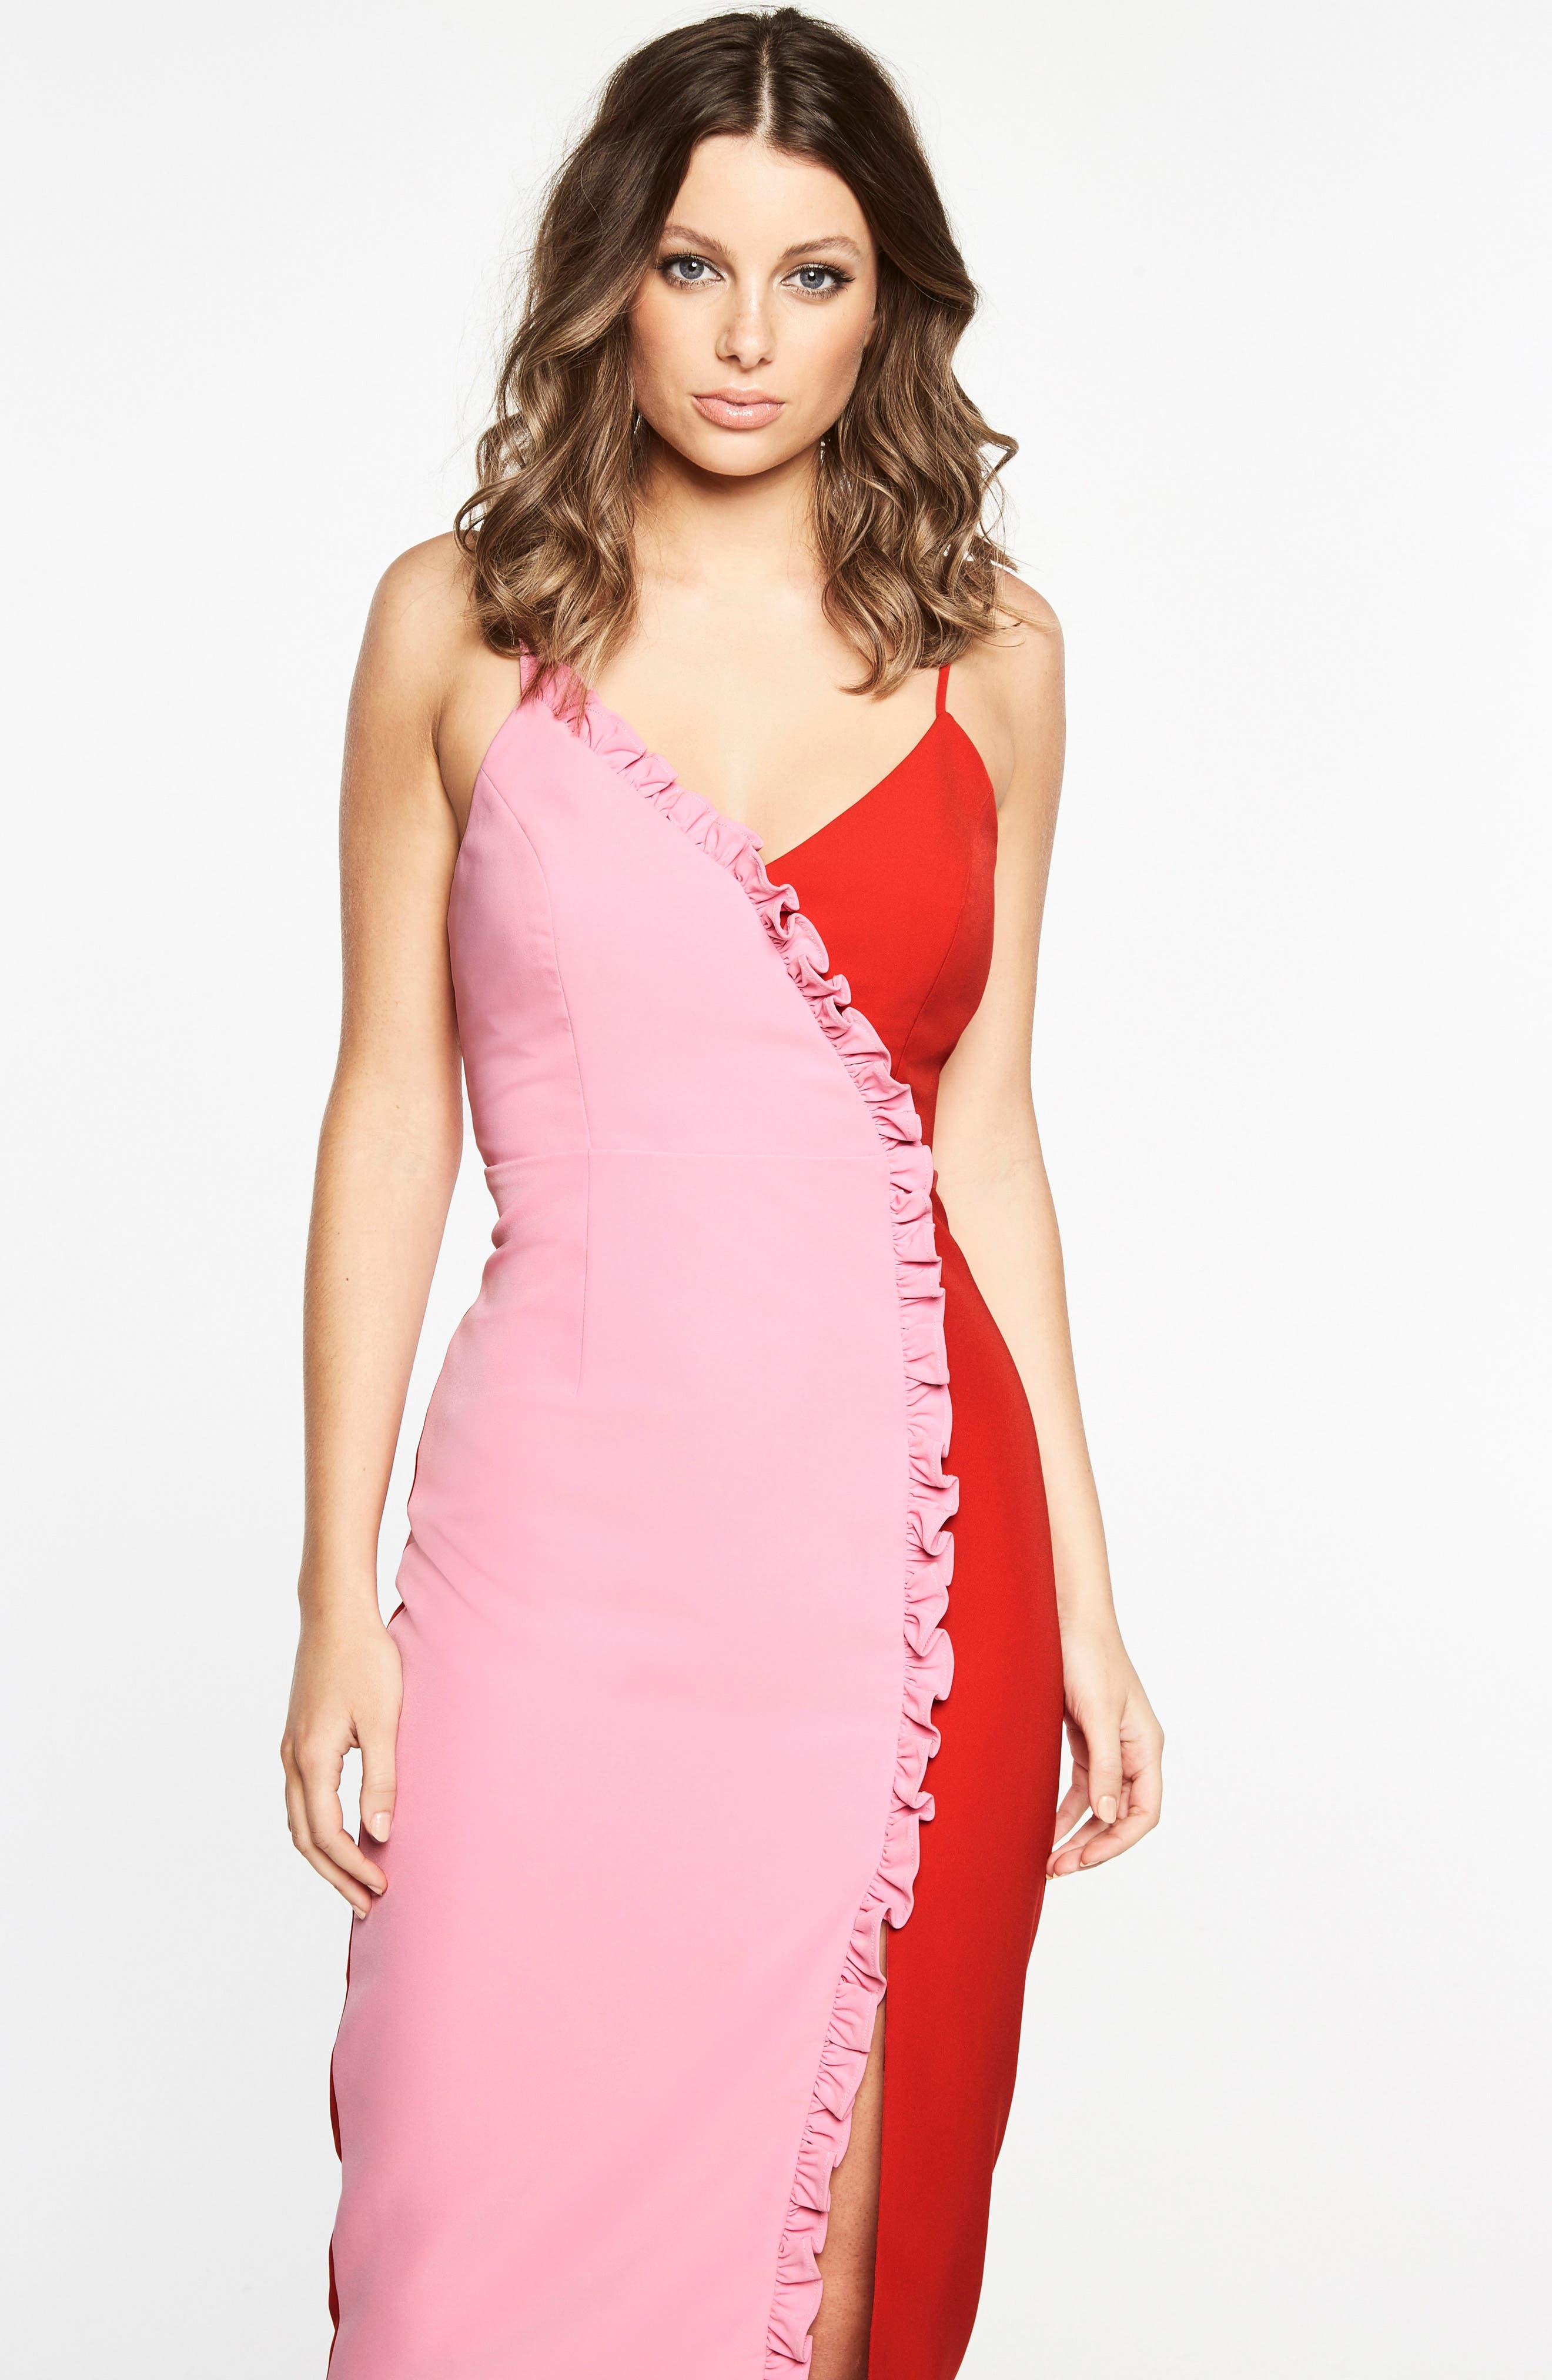 Sherbert Bomb Midi Dress,                         Main,                         color, Fruity-Pink/ Red36.94